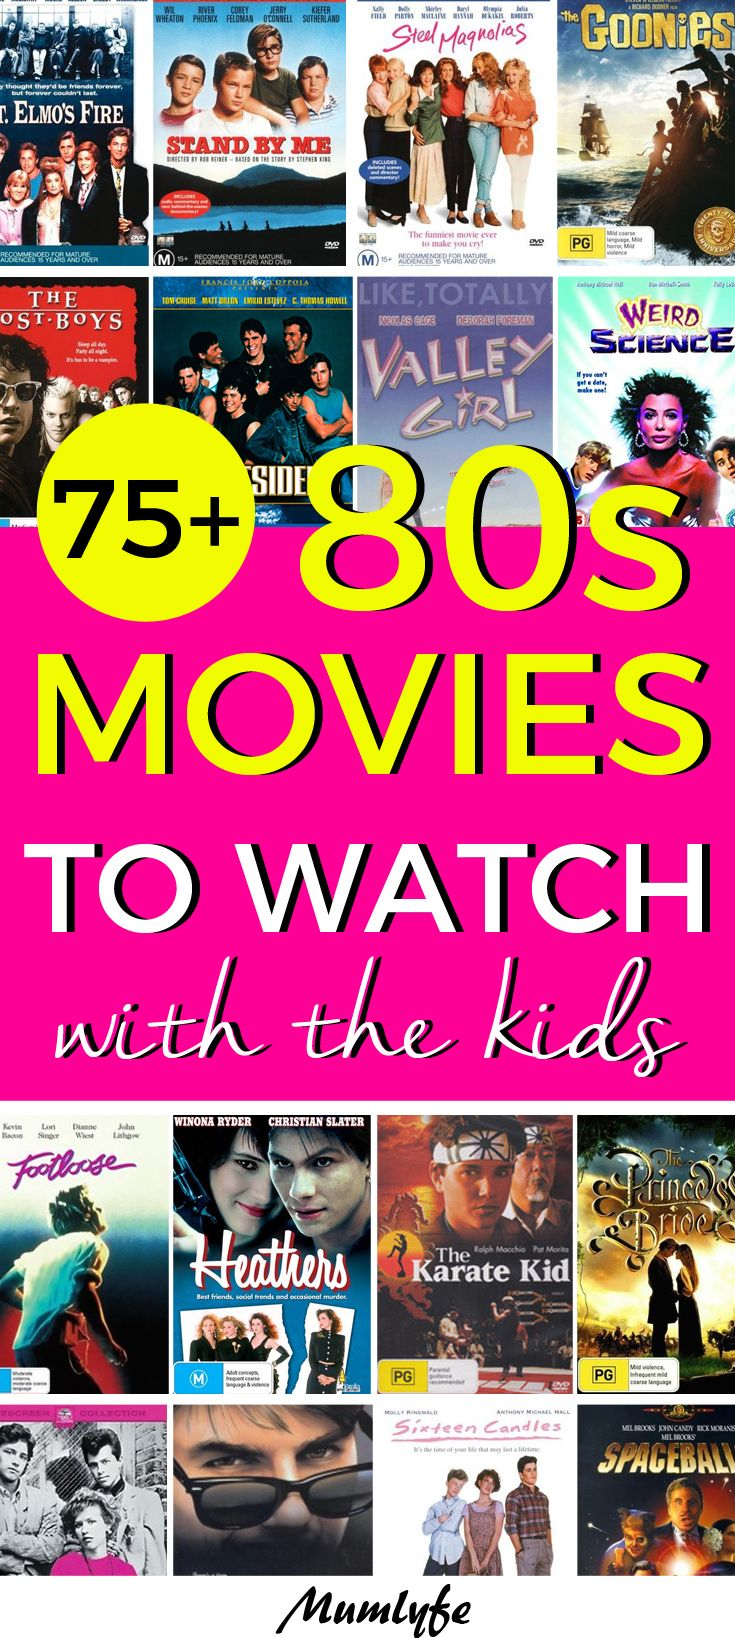 The Best 80s Movies To Watch With The Kids Awesome Way To Spend Time Together 80smovies Teens Movies 80s Movies Teens Movies Teenage Movie